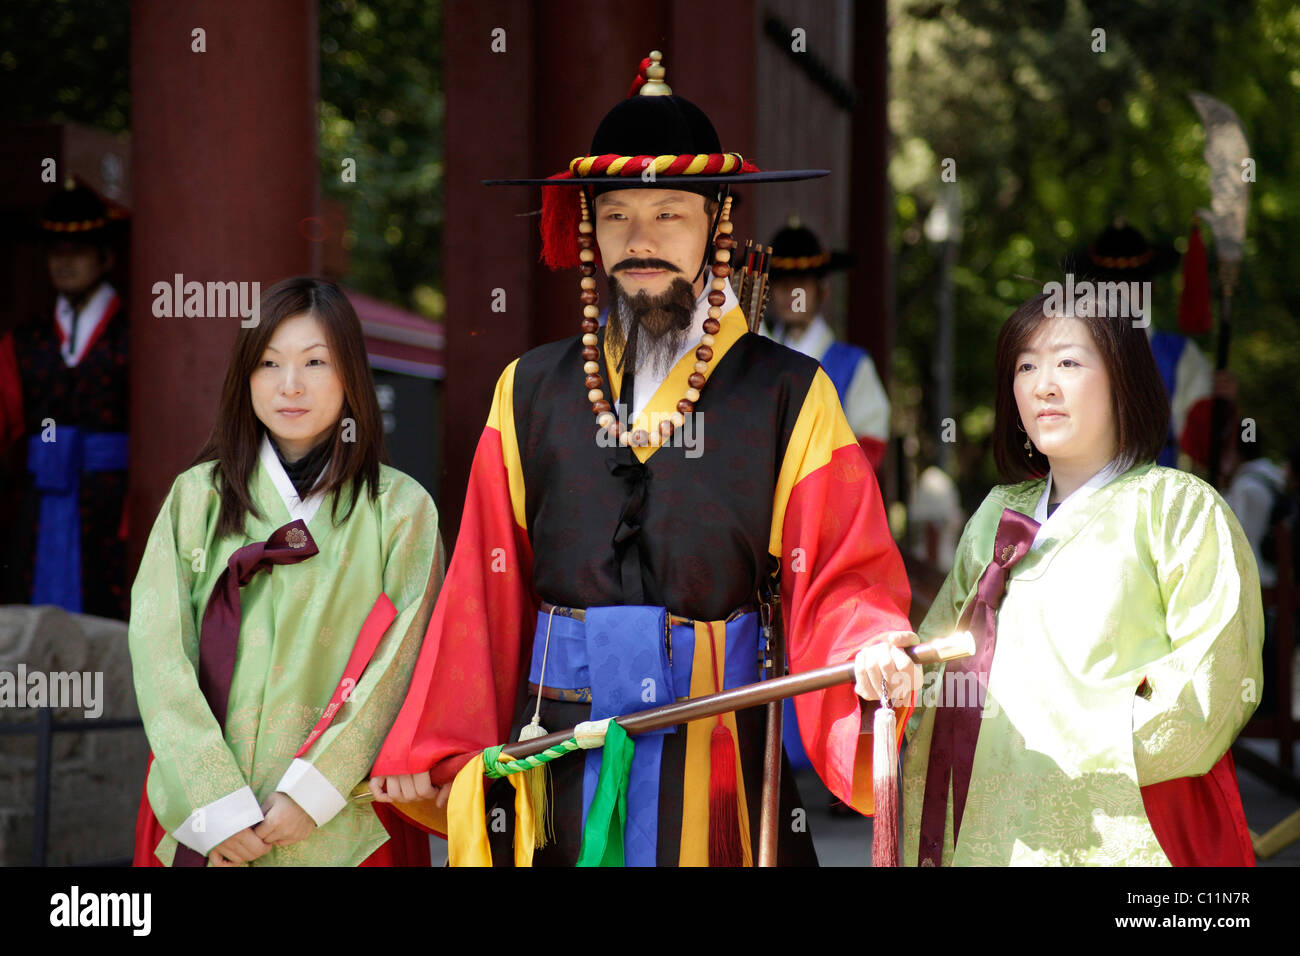 Young women posing with one of the guards in front of the Deoksugung royal palace, Palace of Longevity, in the Korean Stock Photo